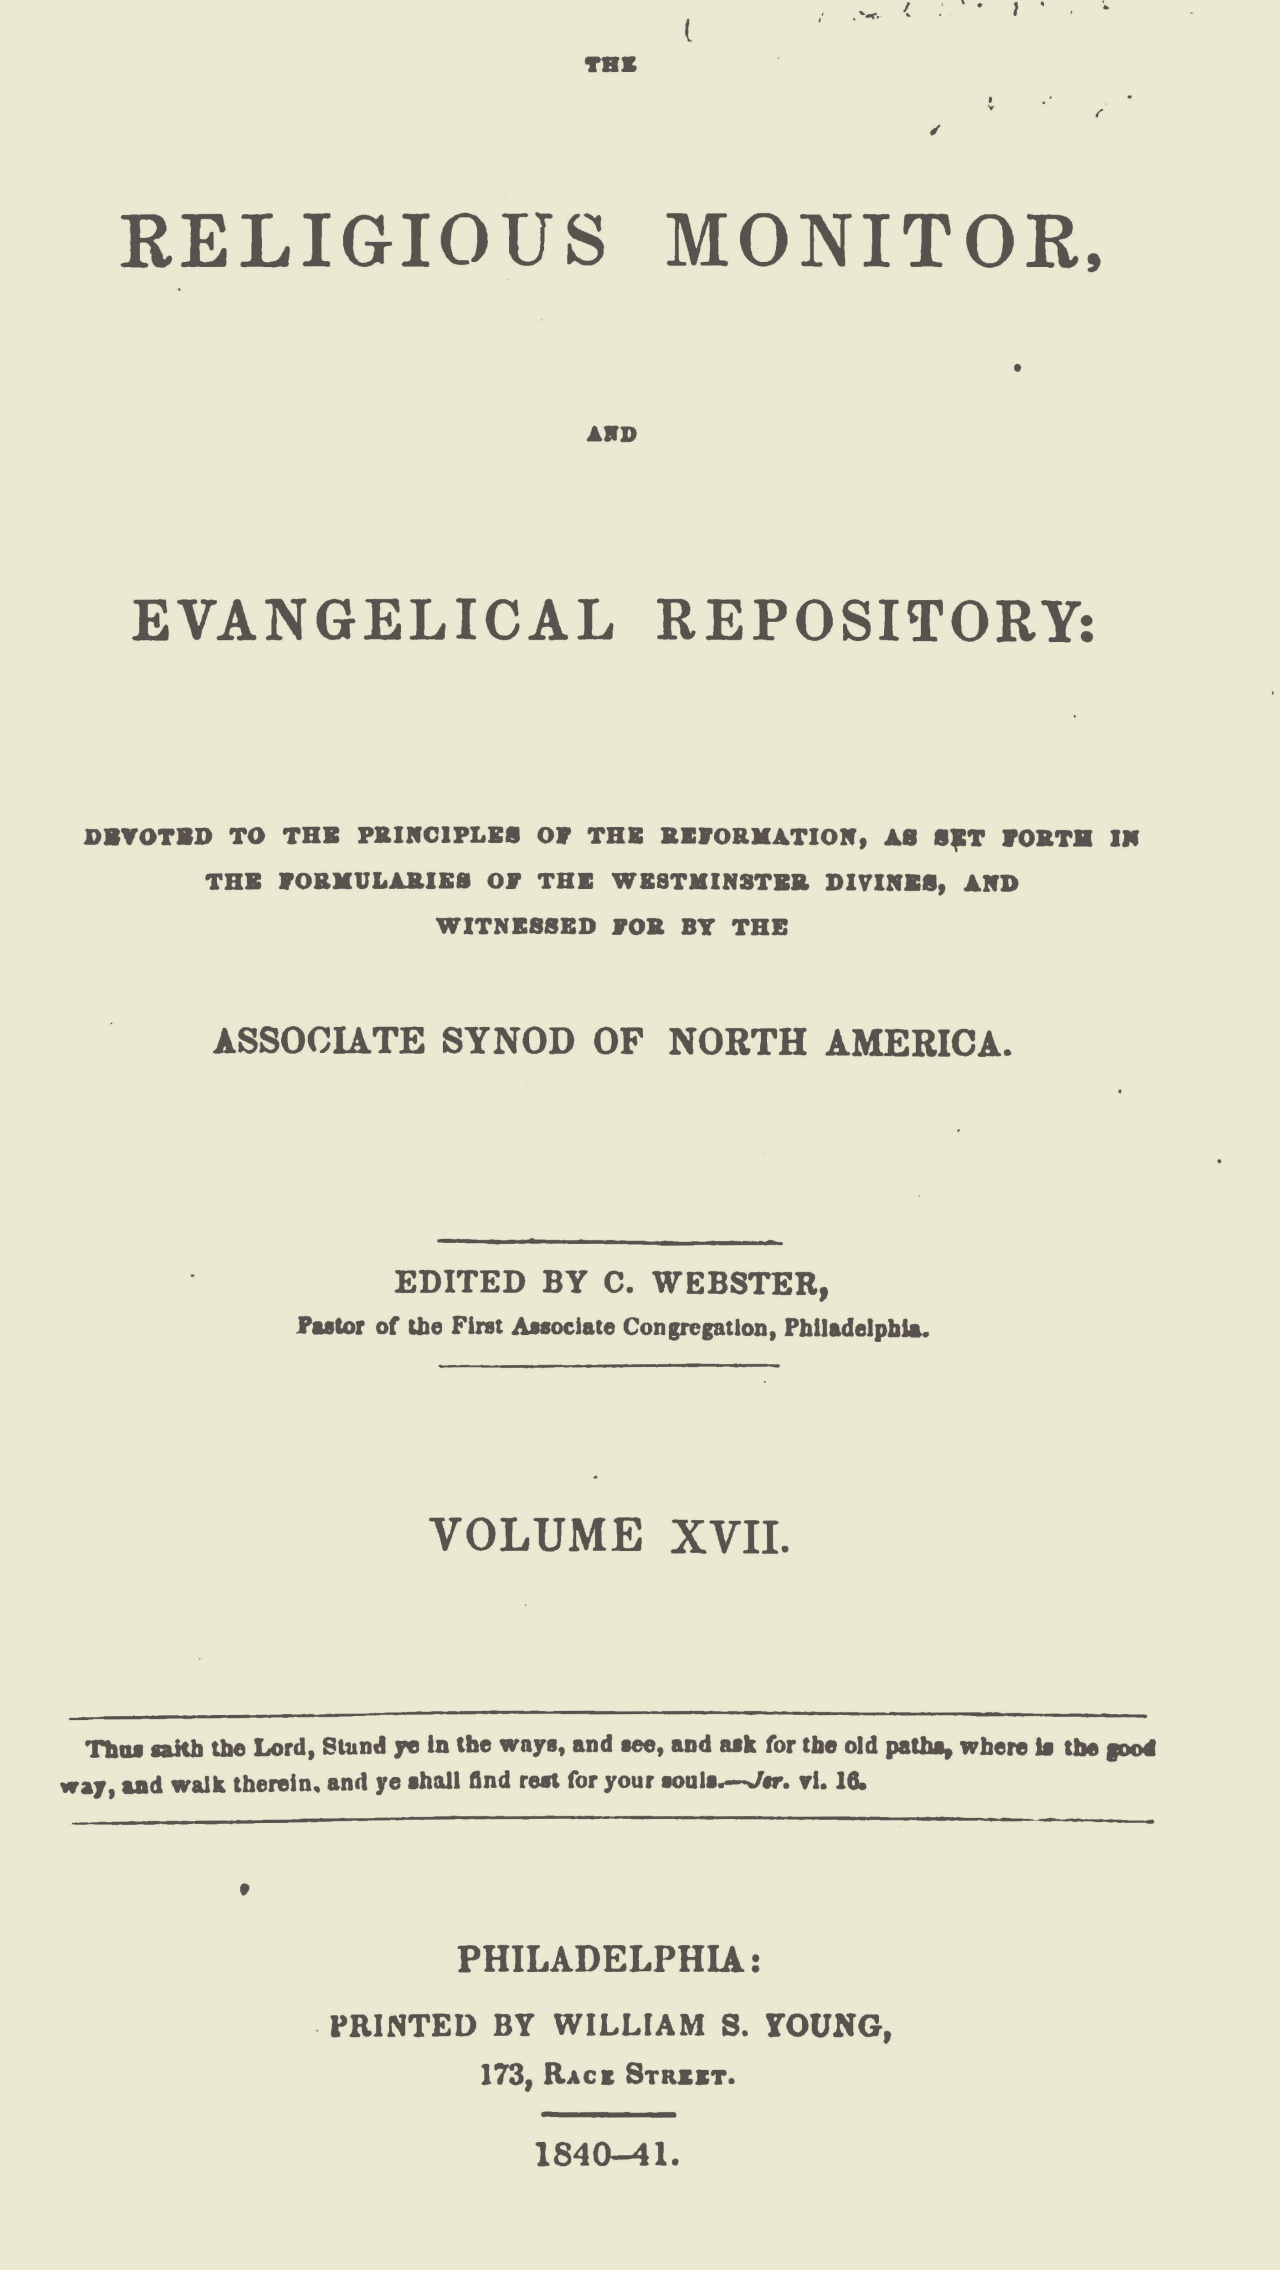 Webster, Chauncey, The Religious Monitor, and Evangelical Repository, Vol. 17 Title Page.jpg